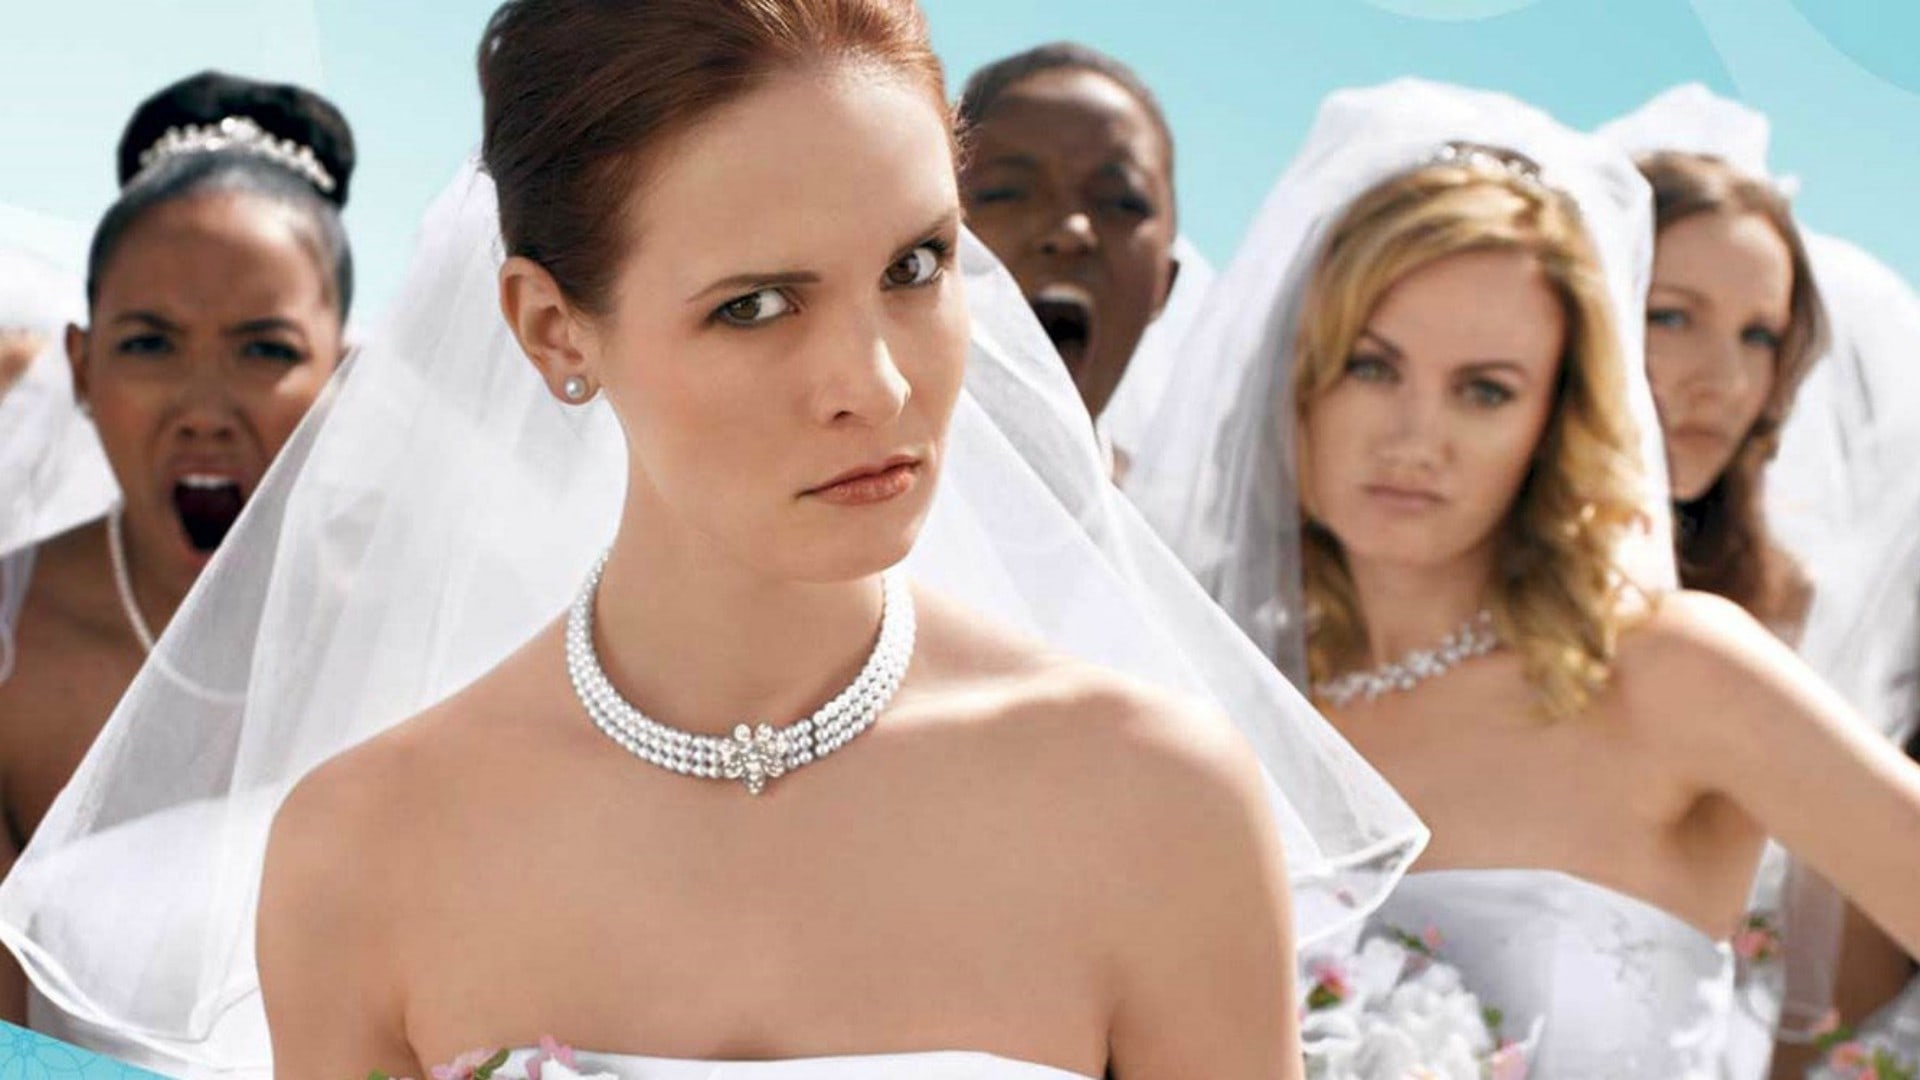 Bridezillas Is Yet Another TV Show Getting the Revival Treatment